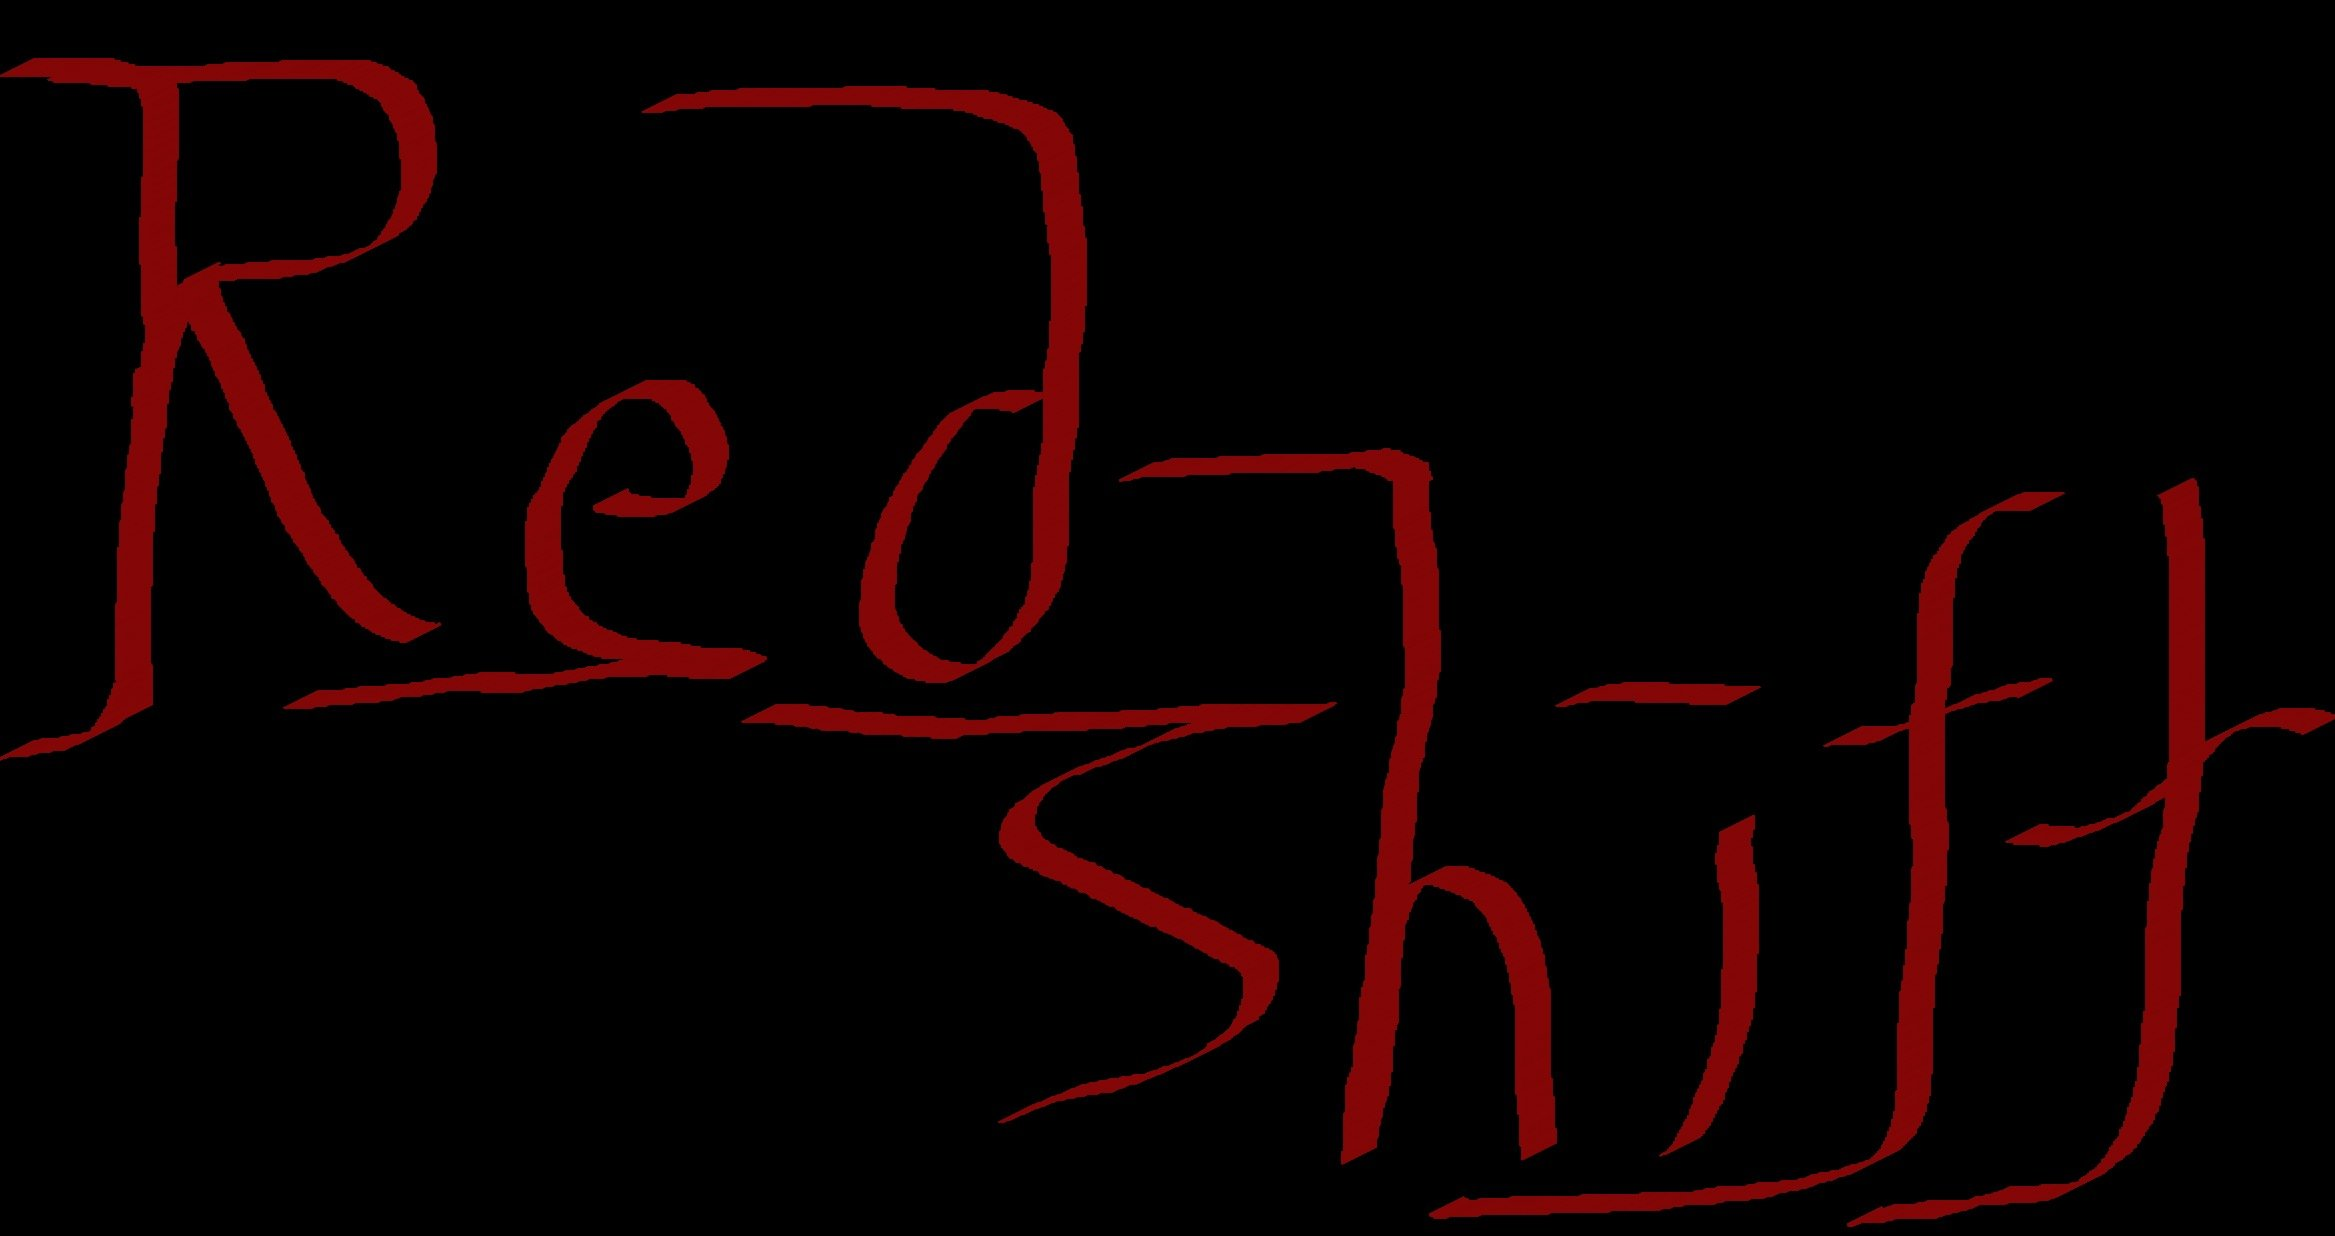 Red Shift - tribute